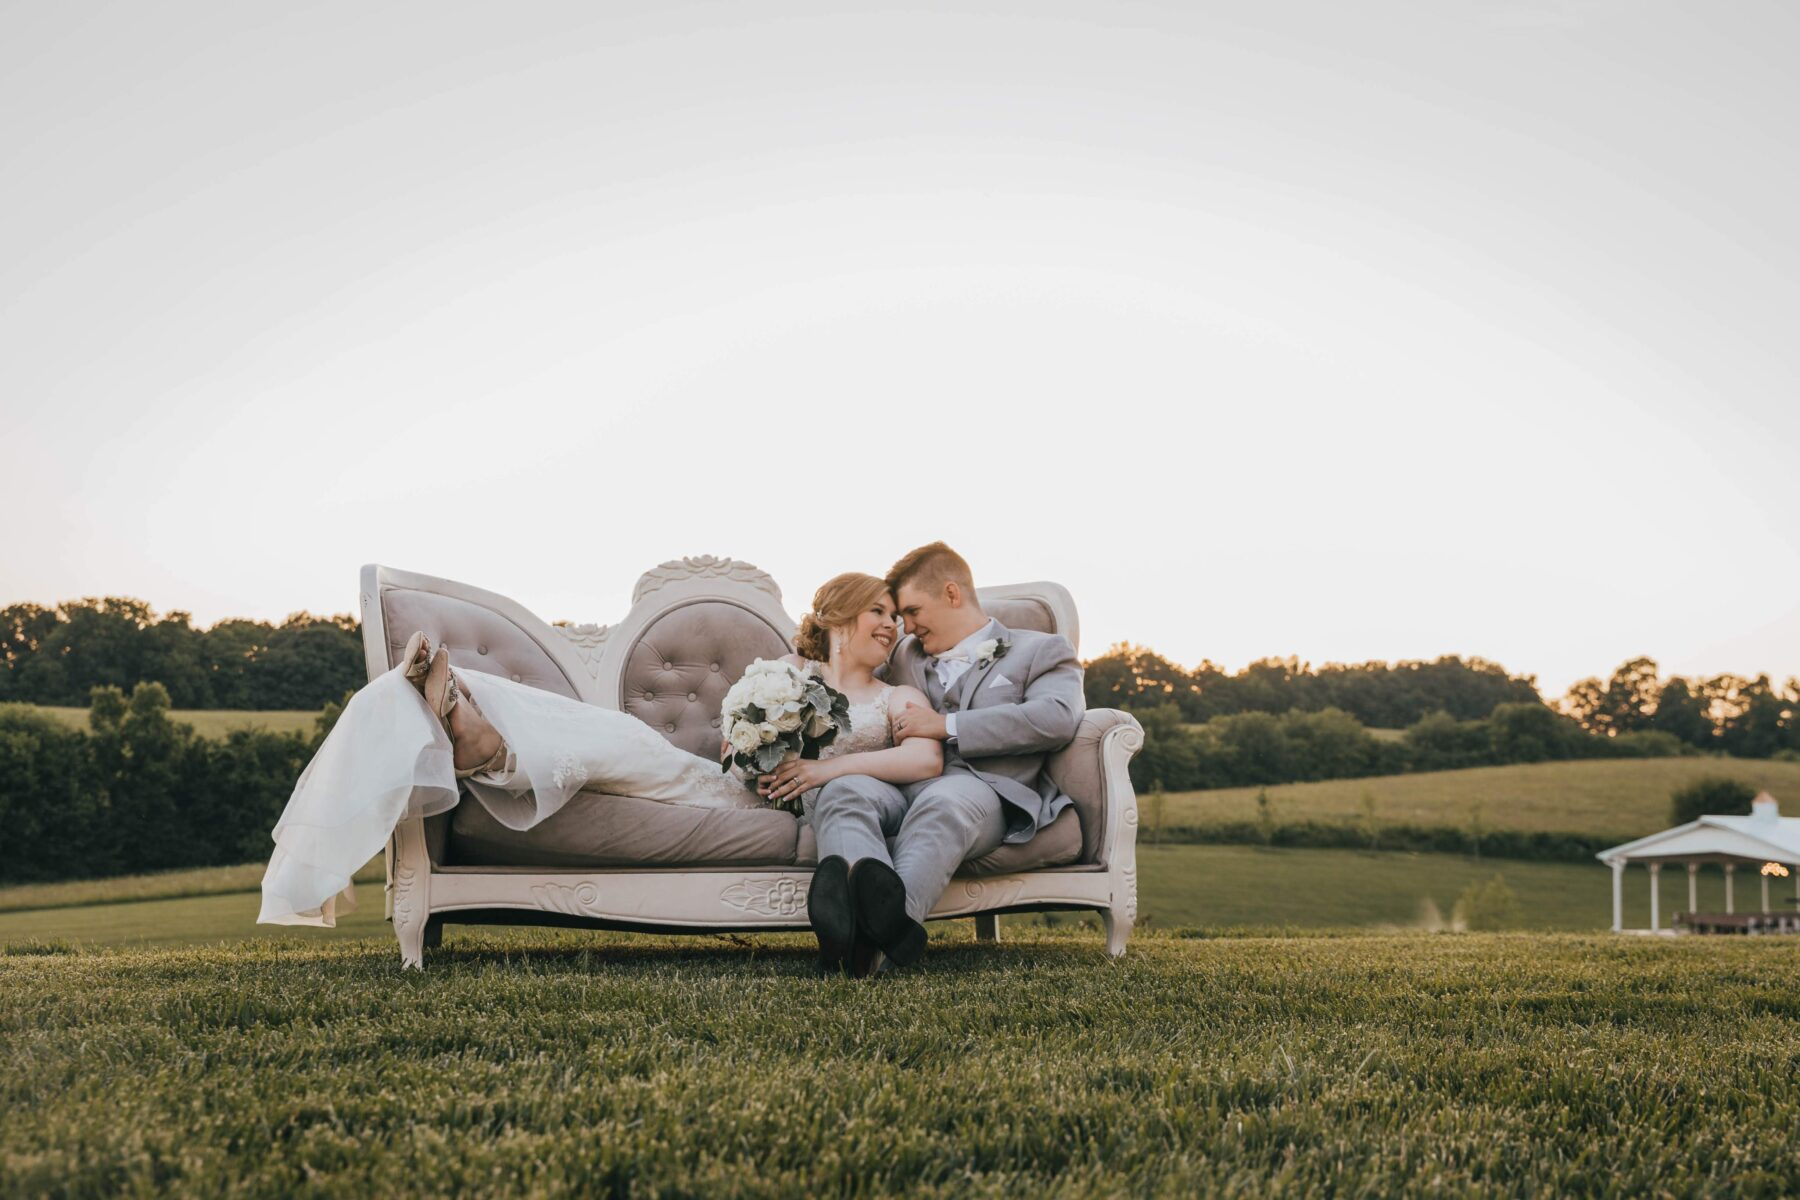 Outdoor wedding portrait: White Dove Barn Wedding by Grace Upon Grace Photography featured on Nashville Bride Guide